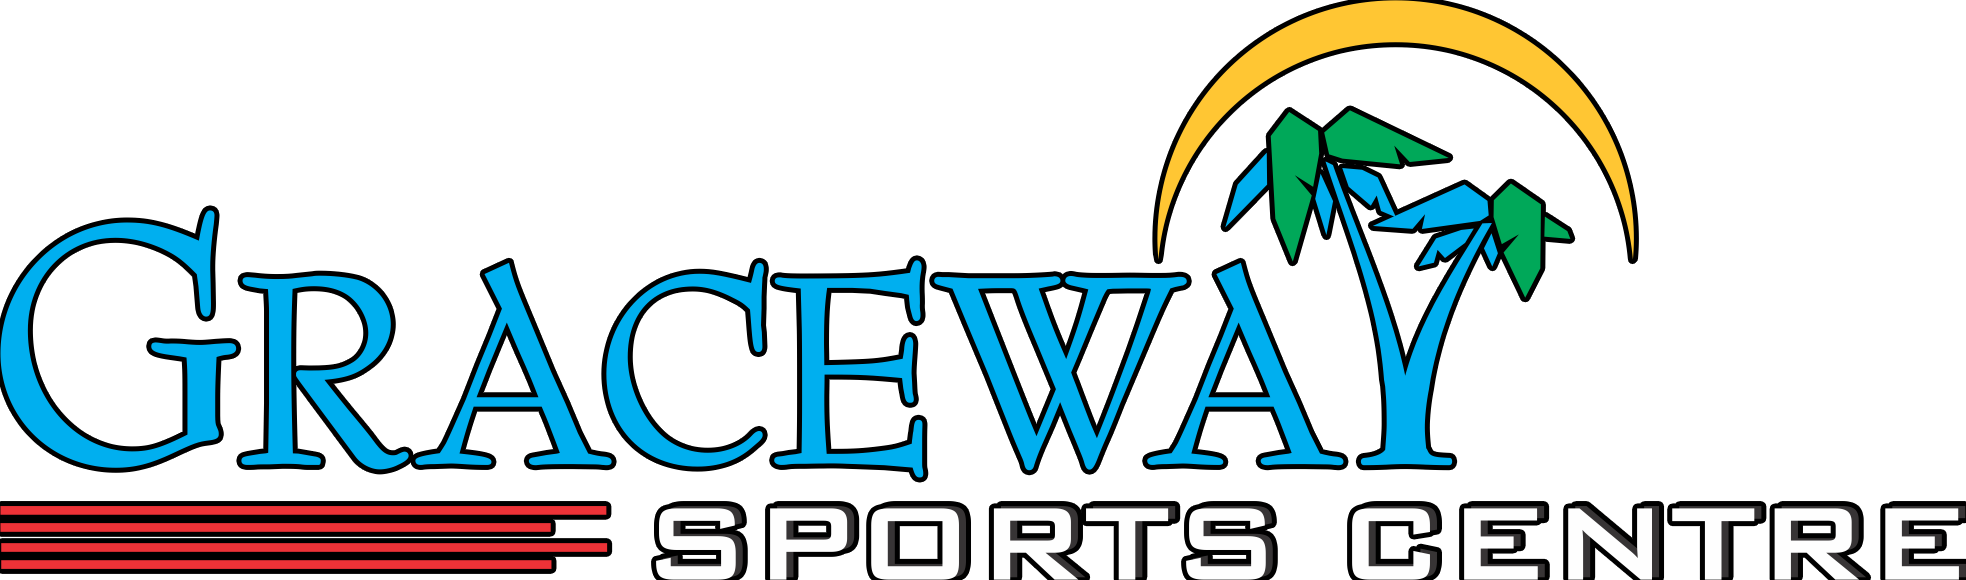 Junior Tennis — Graceway Sports Center